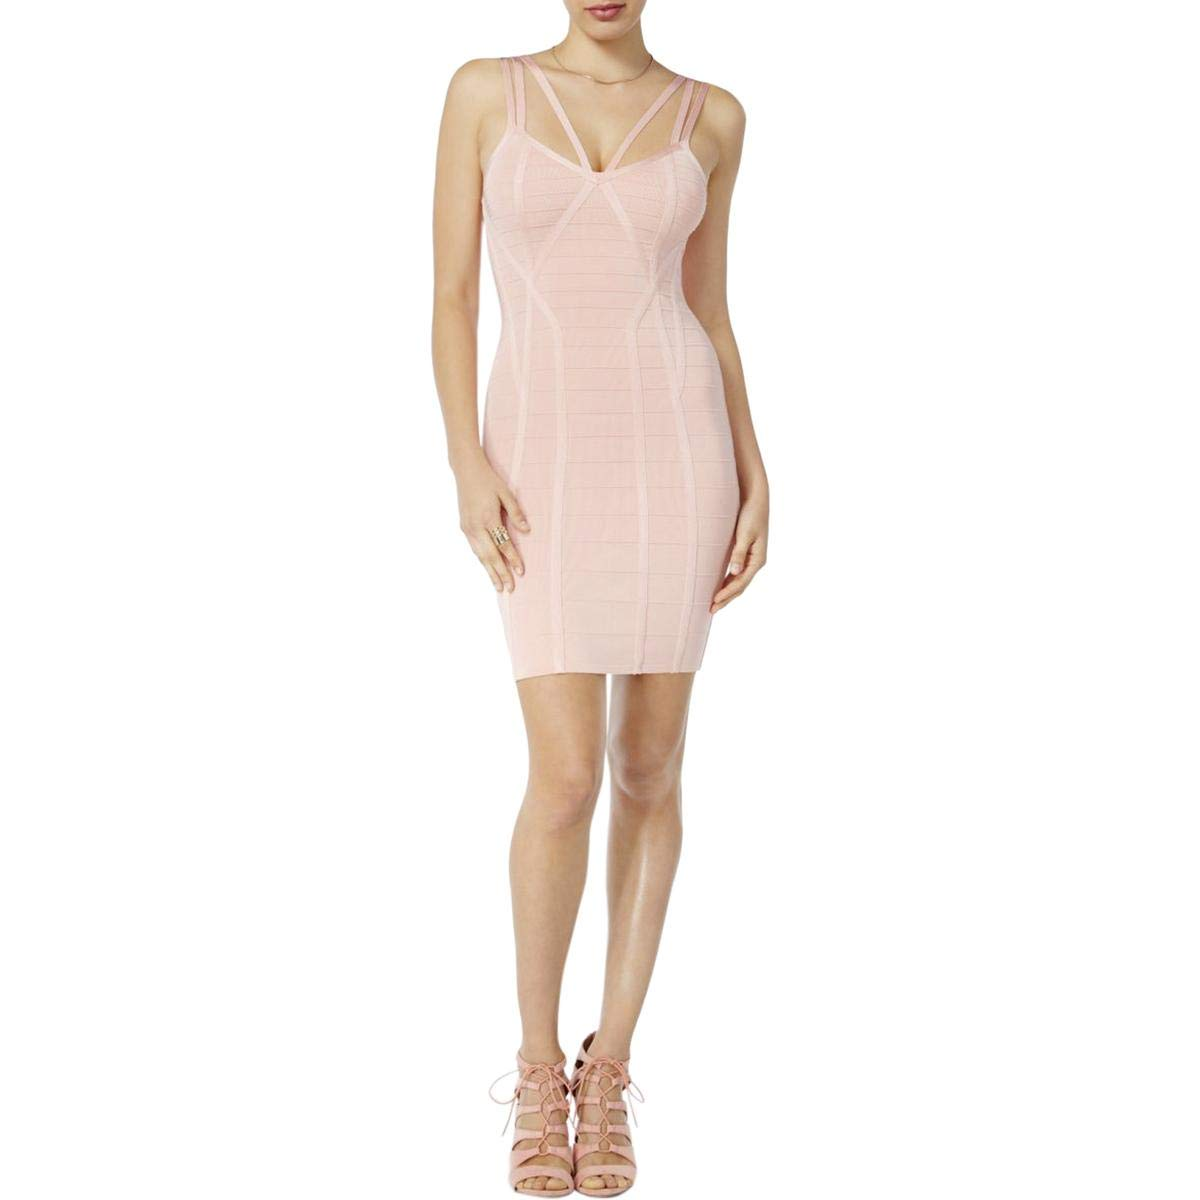 GUESS Womens Mini Strappy Bodycon Dress Pink XL at Amazon Women s Clothing  store  86971cc25034d